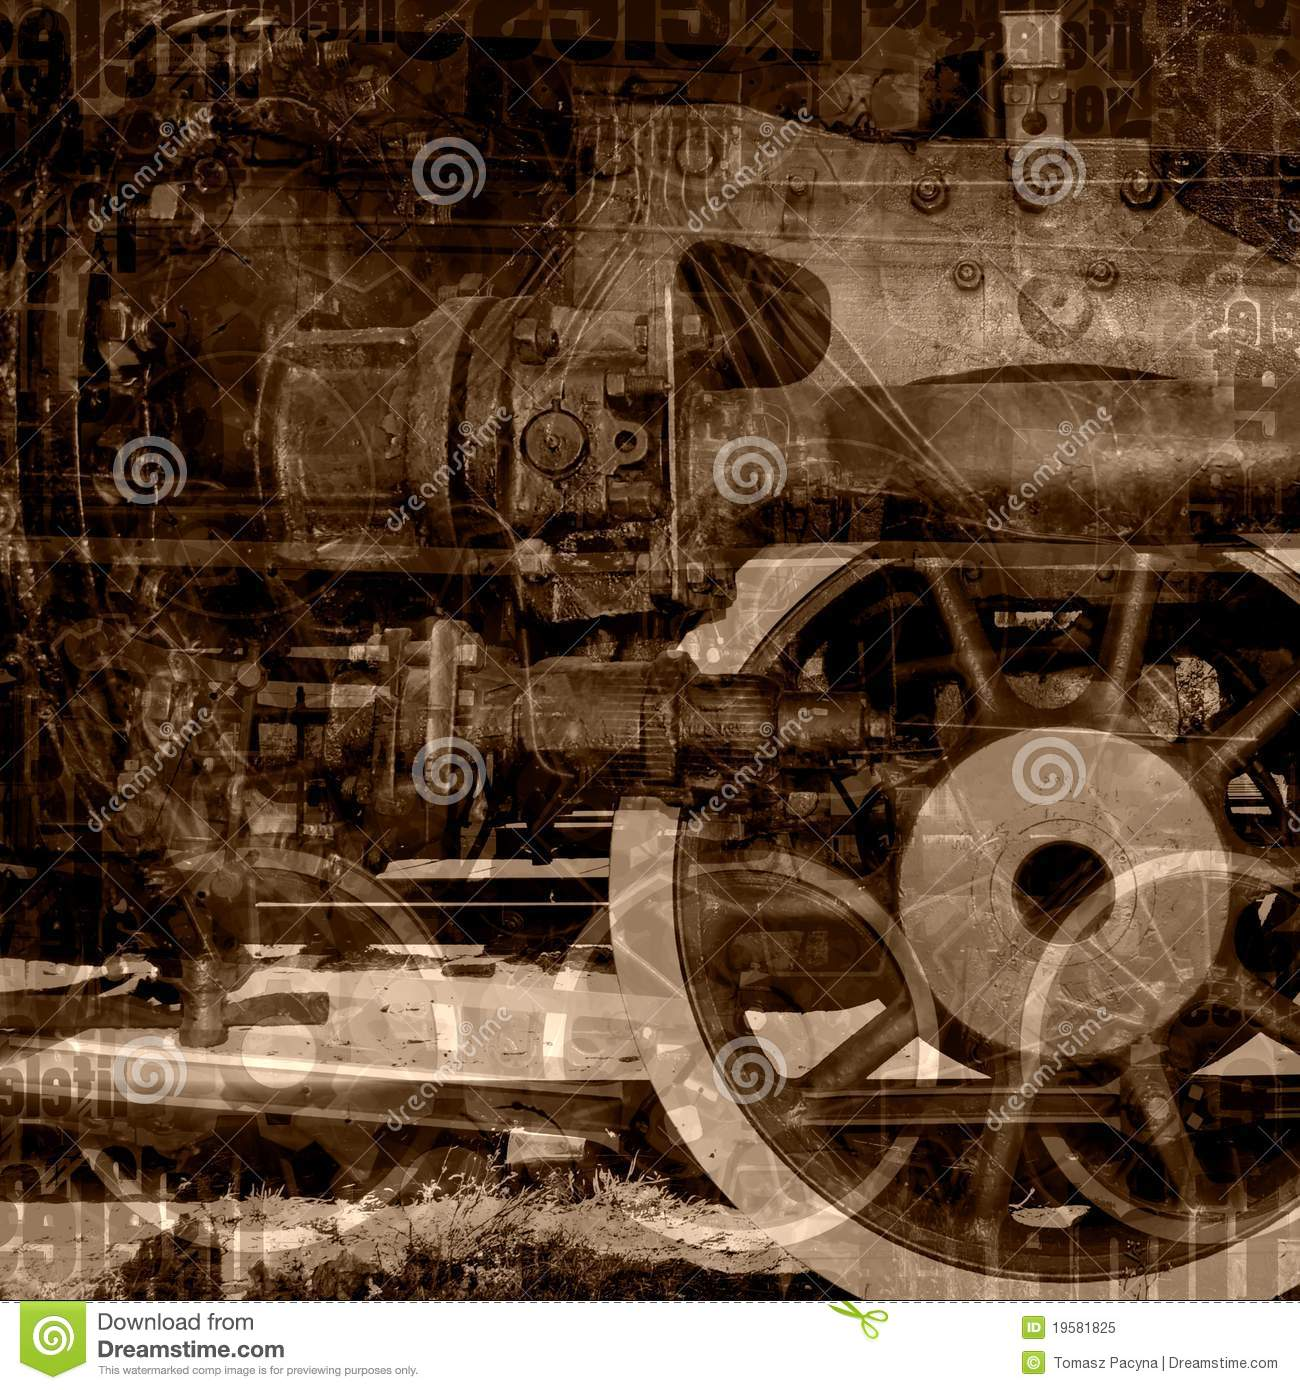 Old machinery illustration